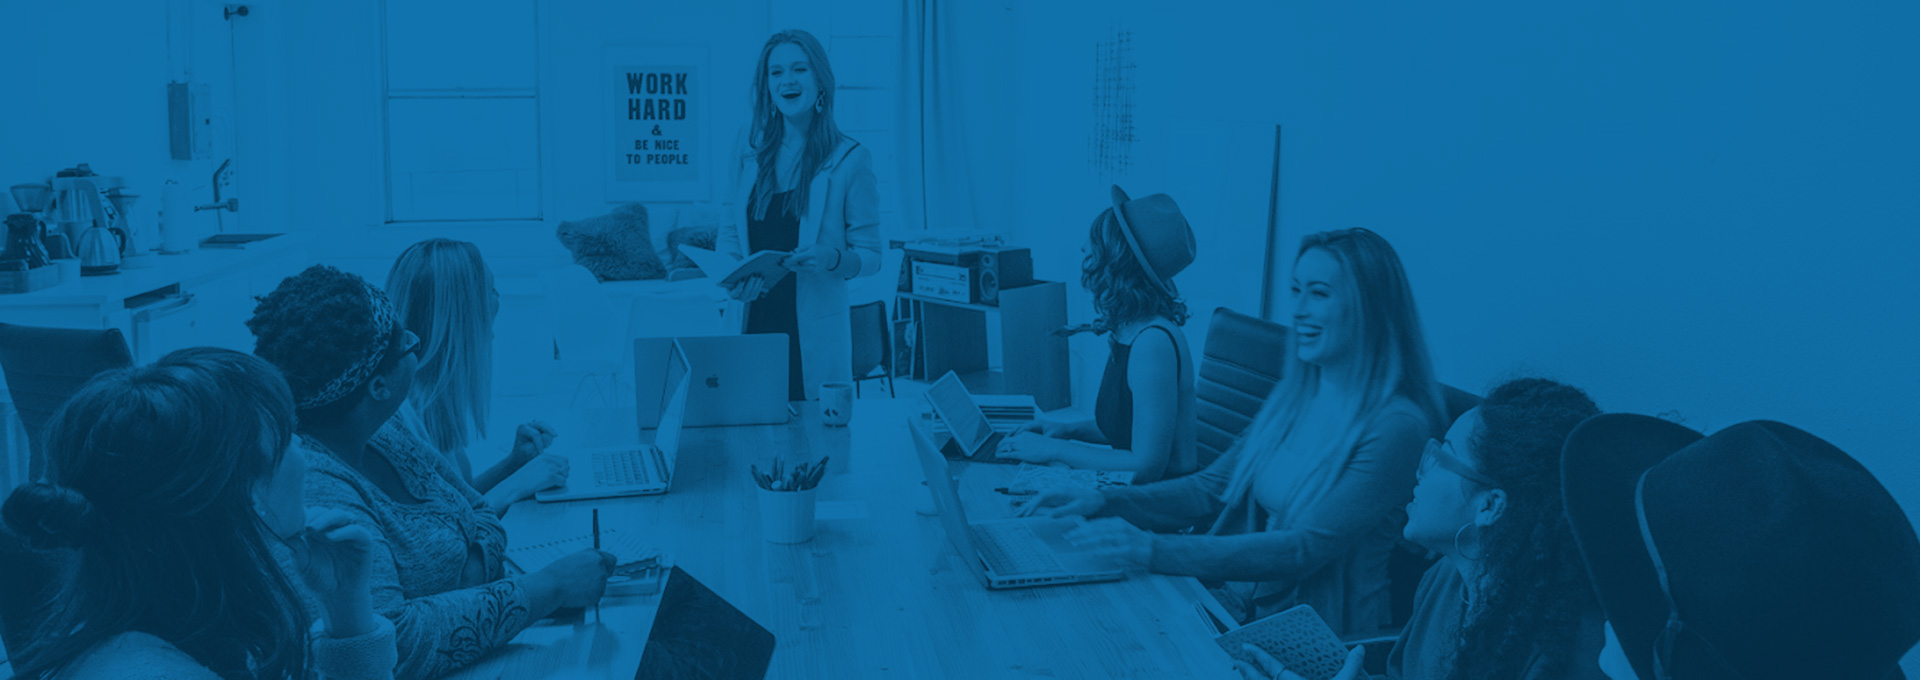 SDG 5 Gender Equality: How to Ensure Gender Diversity, Equity and Inclusion In the Workplace